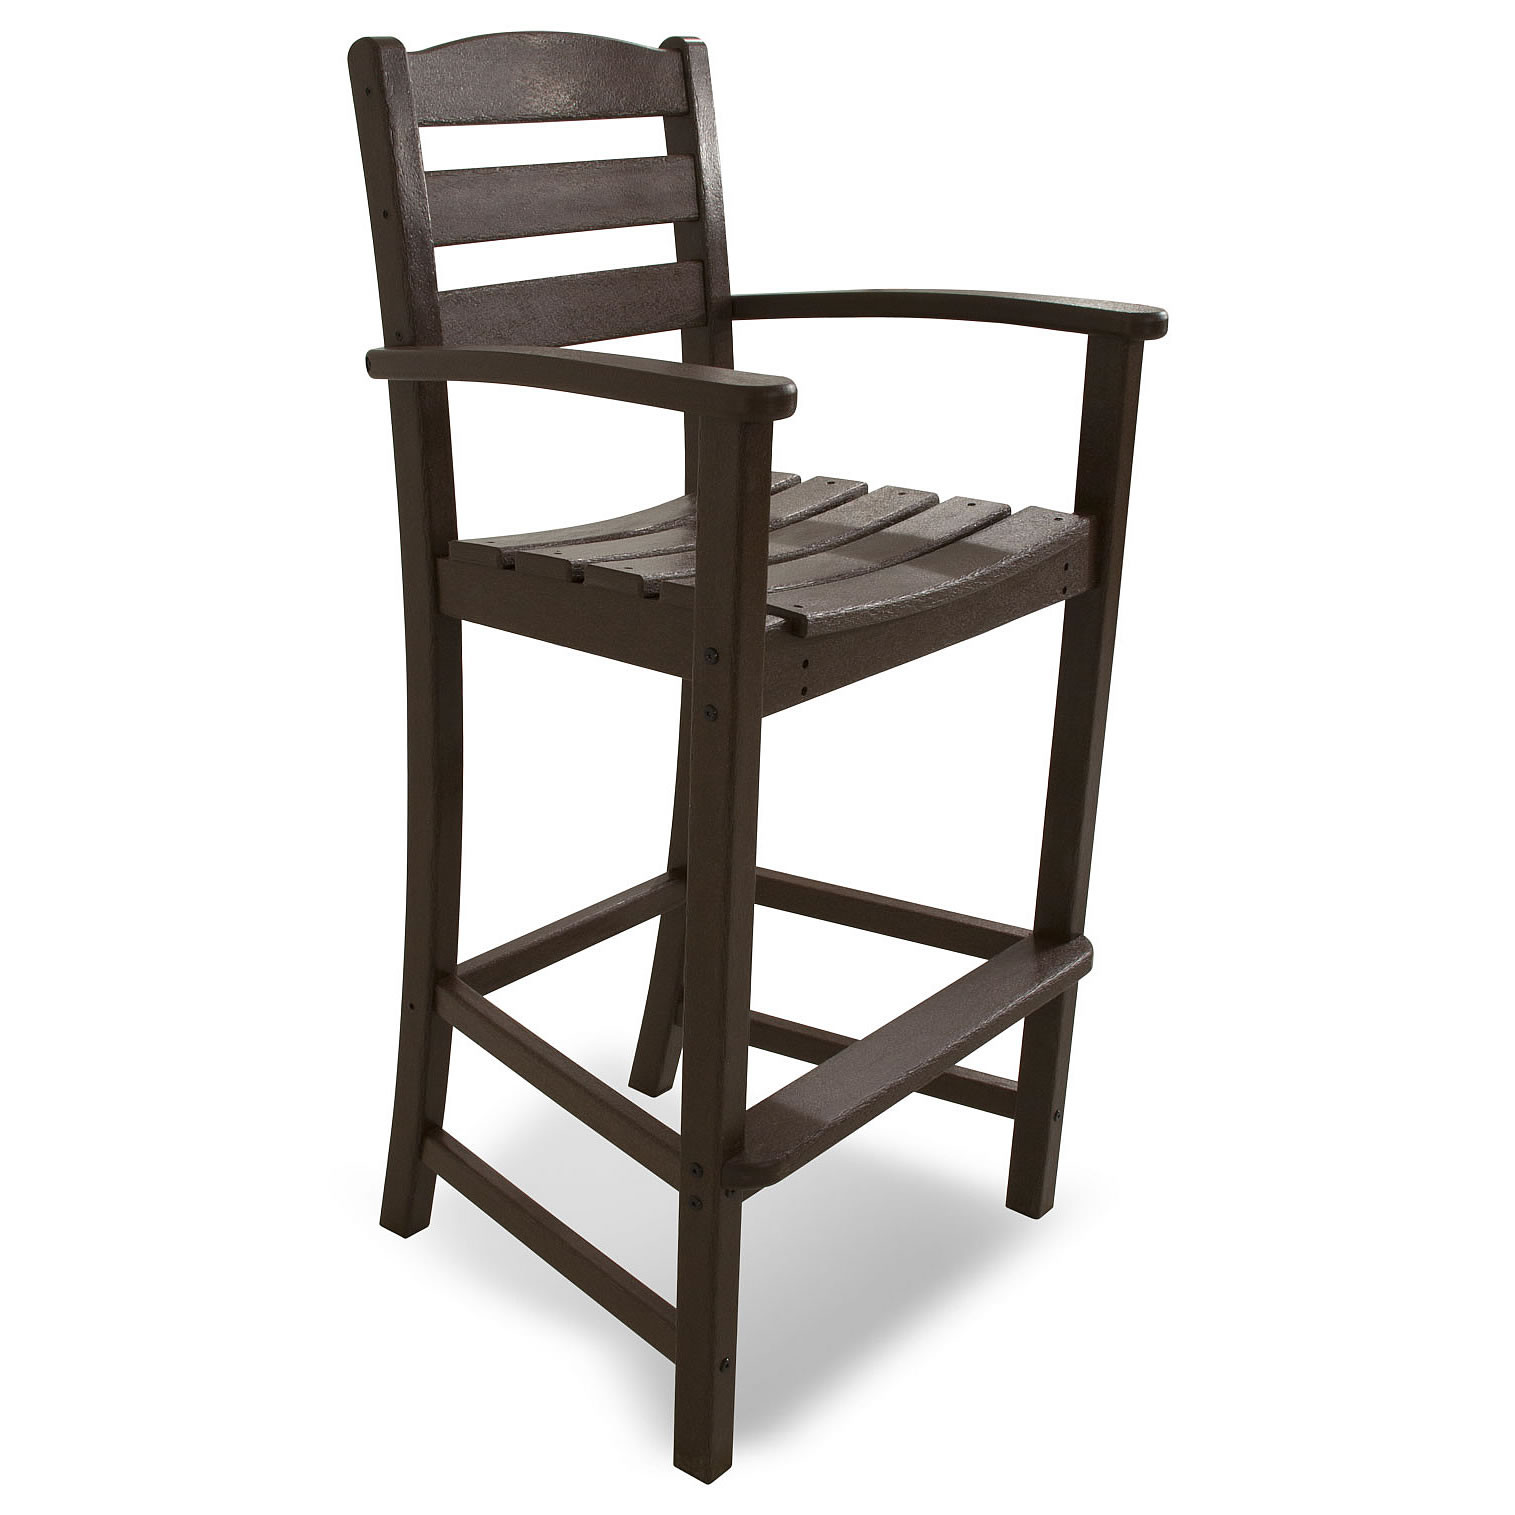 Polywood La Casa Cafe Bar Arm Chair La Casa Cafe Polywood Outdoor Furniture Collections